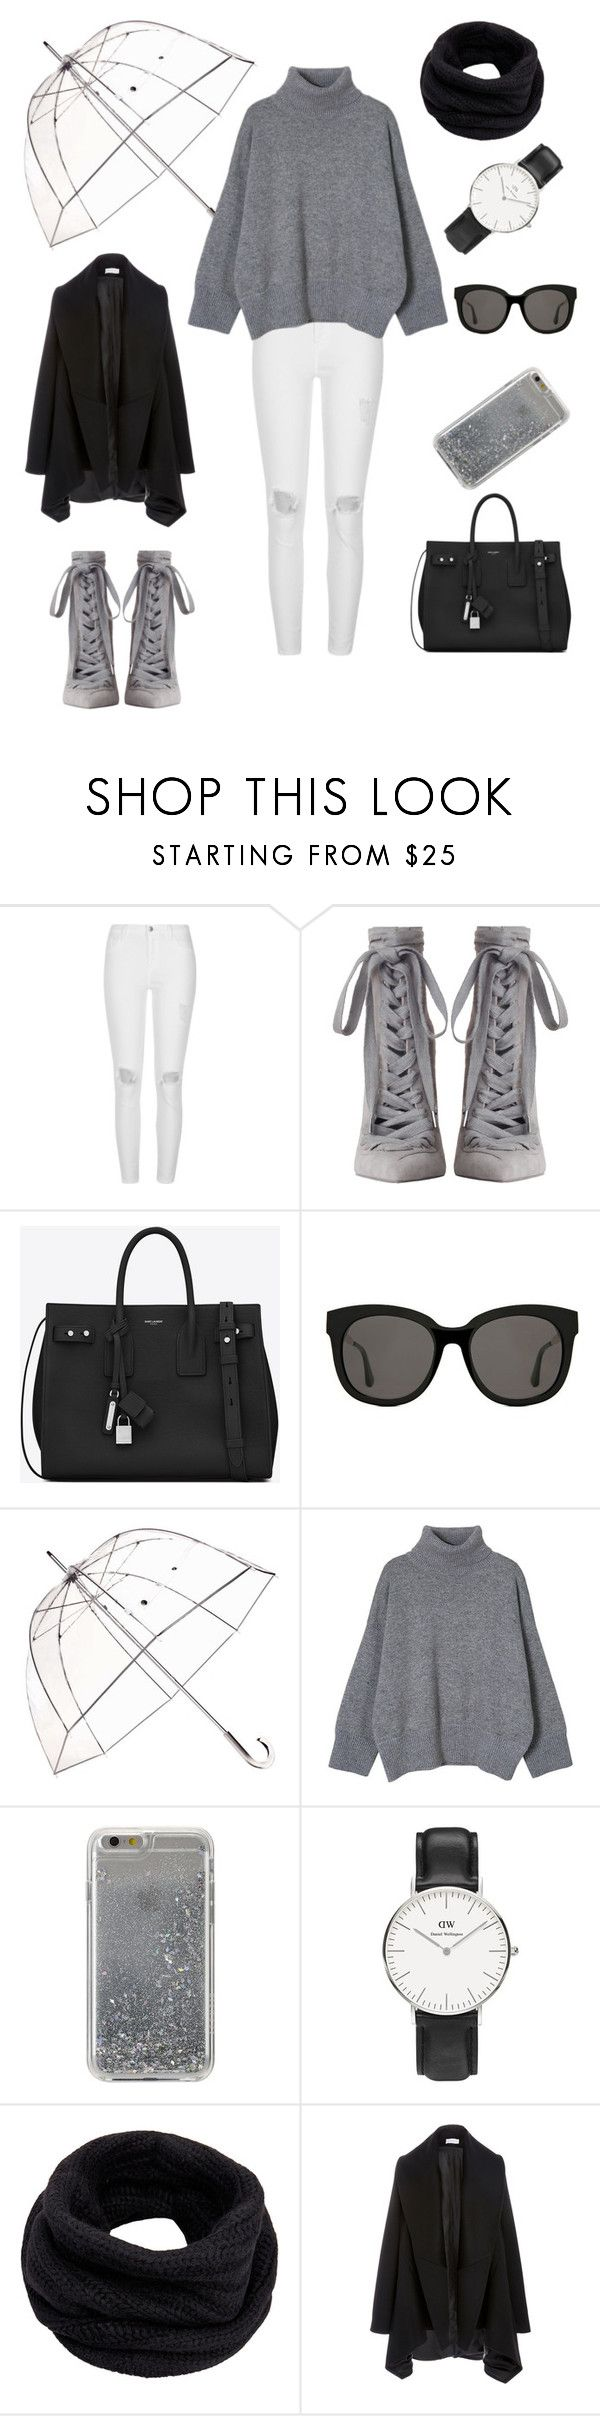 """Untitled #254"" by natalyholly on Polyvore featuring River Island, Zimmermann, Yves Saint Laurent, Gentle Monster, Totes, Agent 18, Daniel Wellington and Helmut Lang"